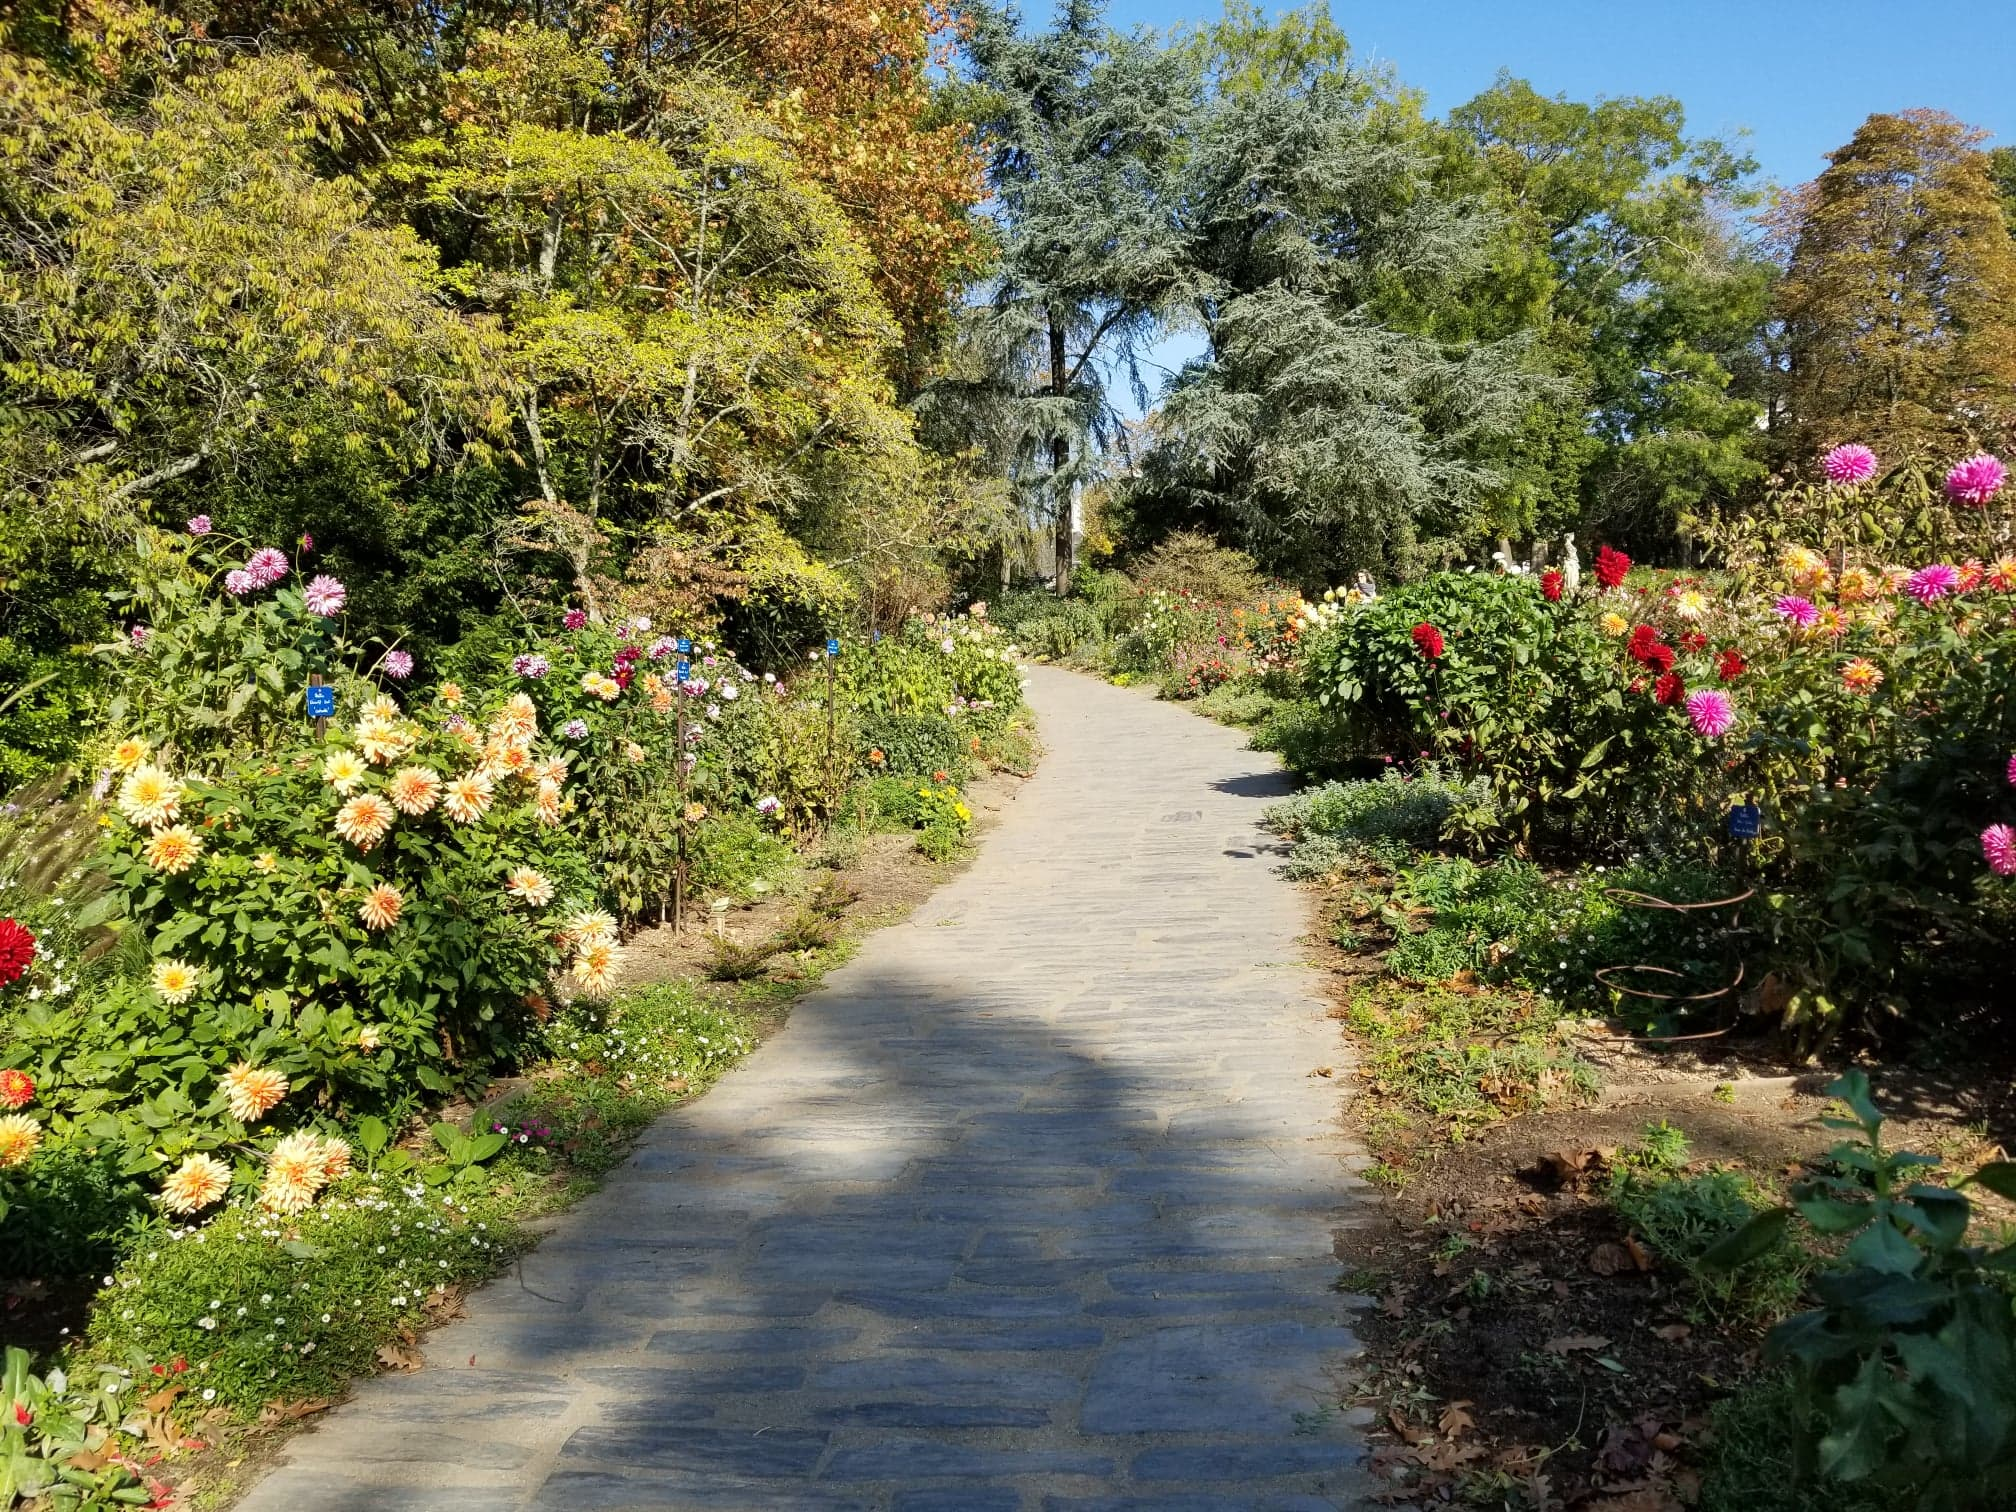 A pathway with different colors and varieties of dahlias surrounding it